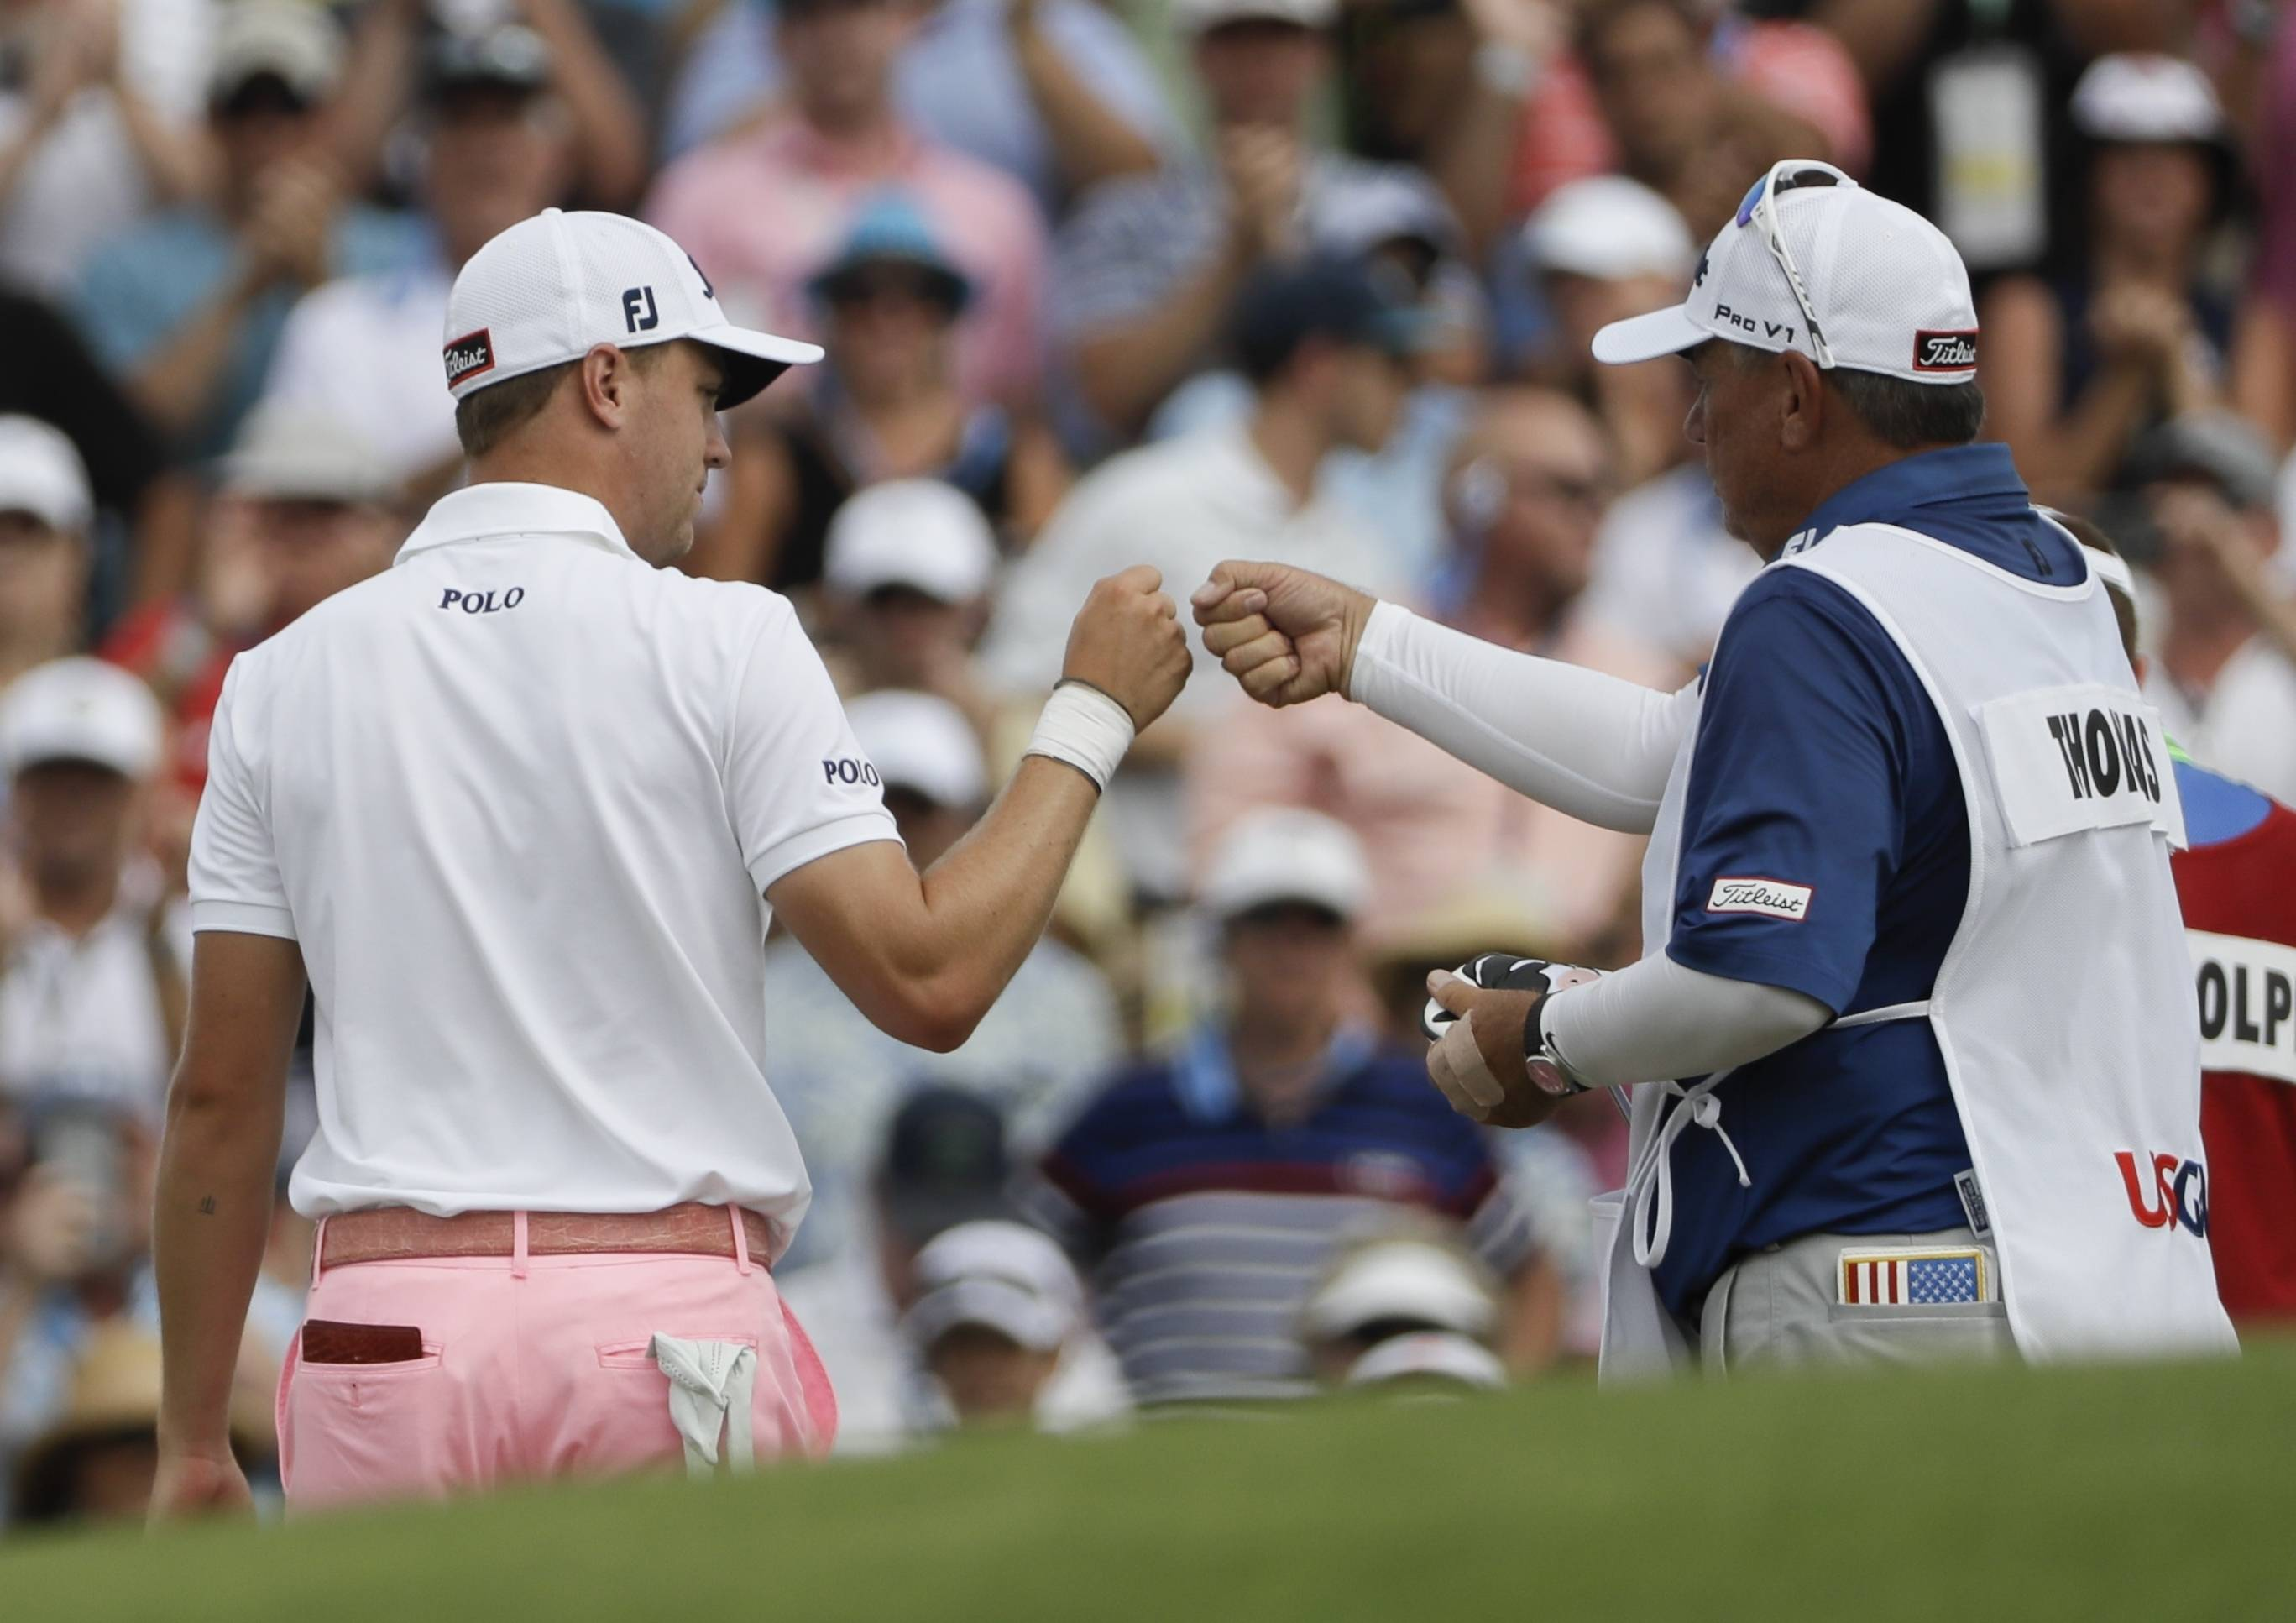 Justin Thomas is congratulated by his caddie after his eagle on the 18th hole during the third round of the U.S. Open at Erin Hills in Erin, Wisconsin.